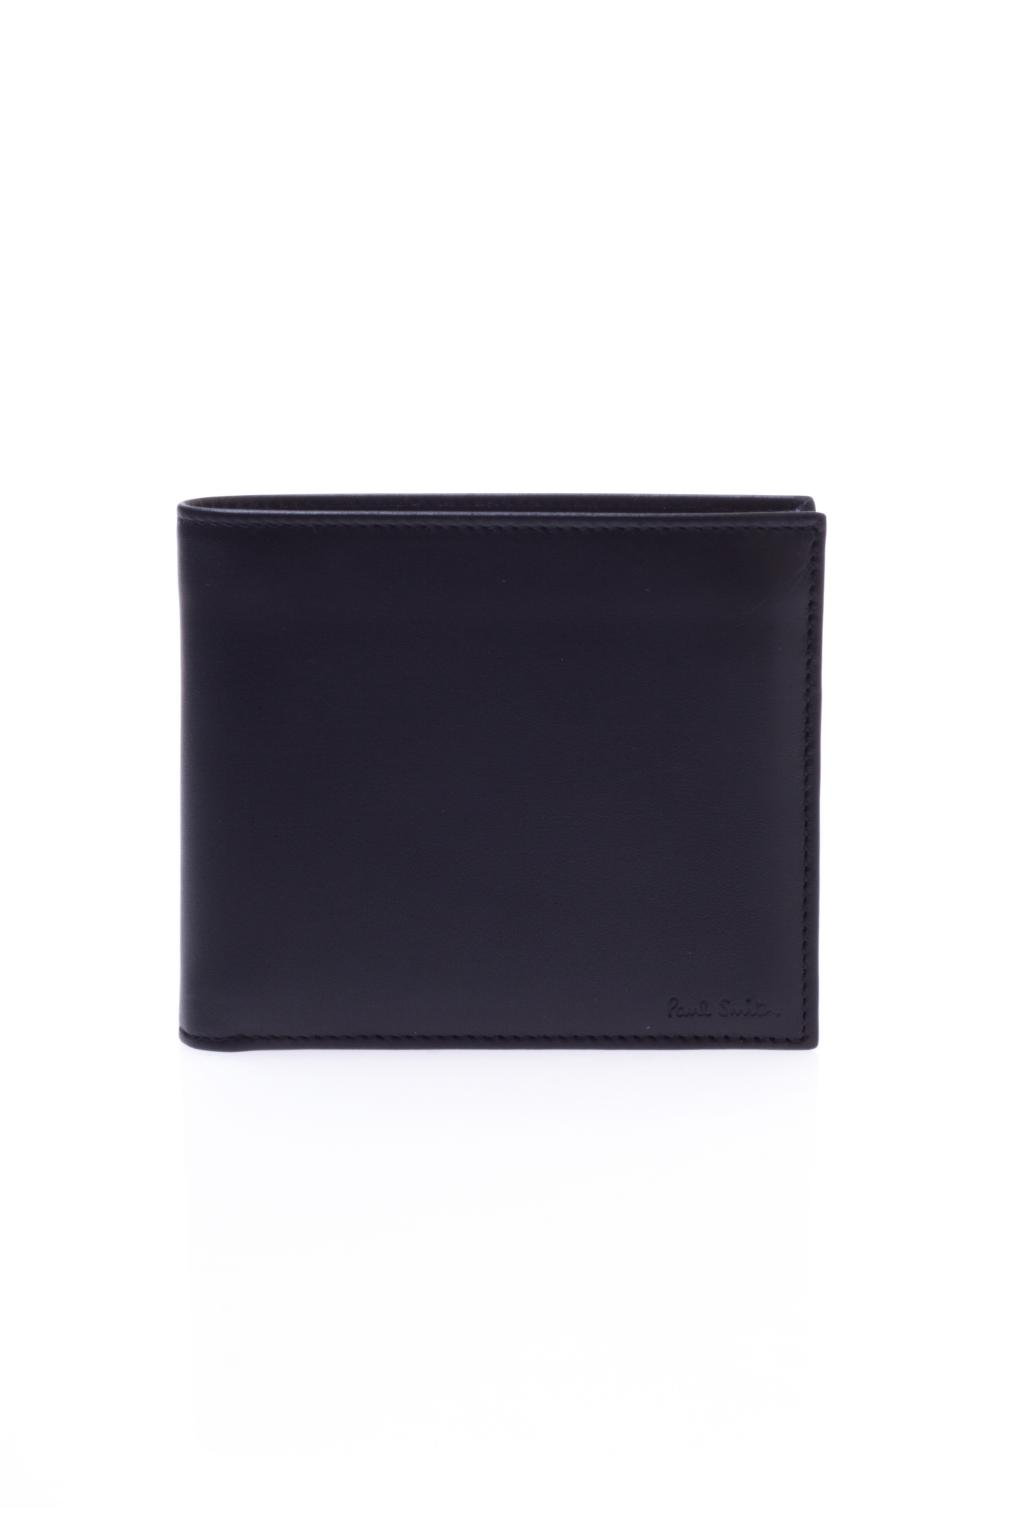 Paul Smith Wallet With Card Holder